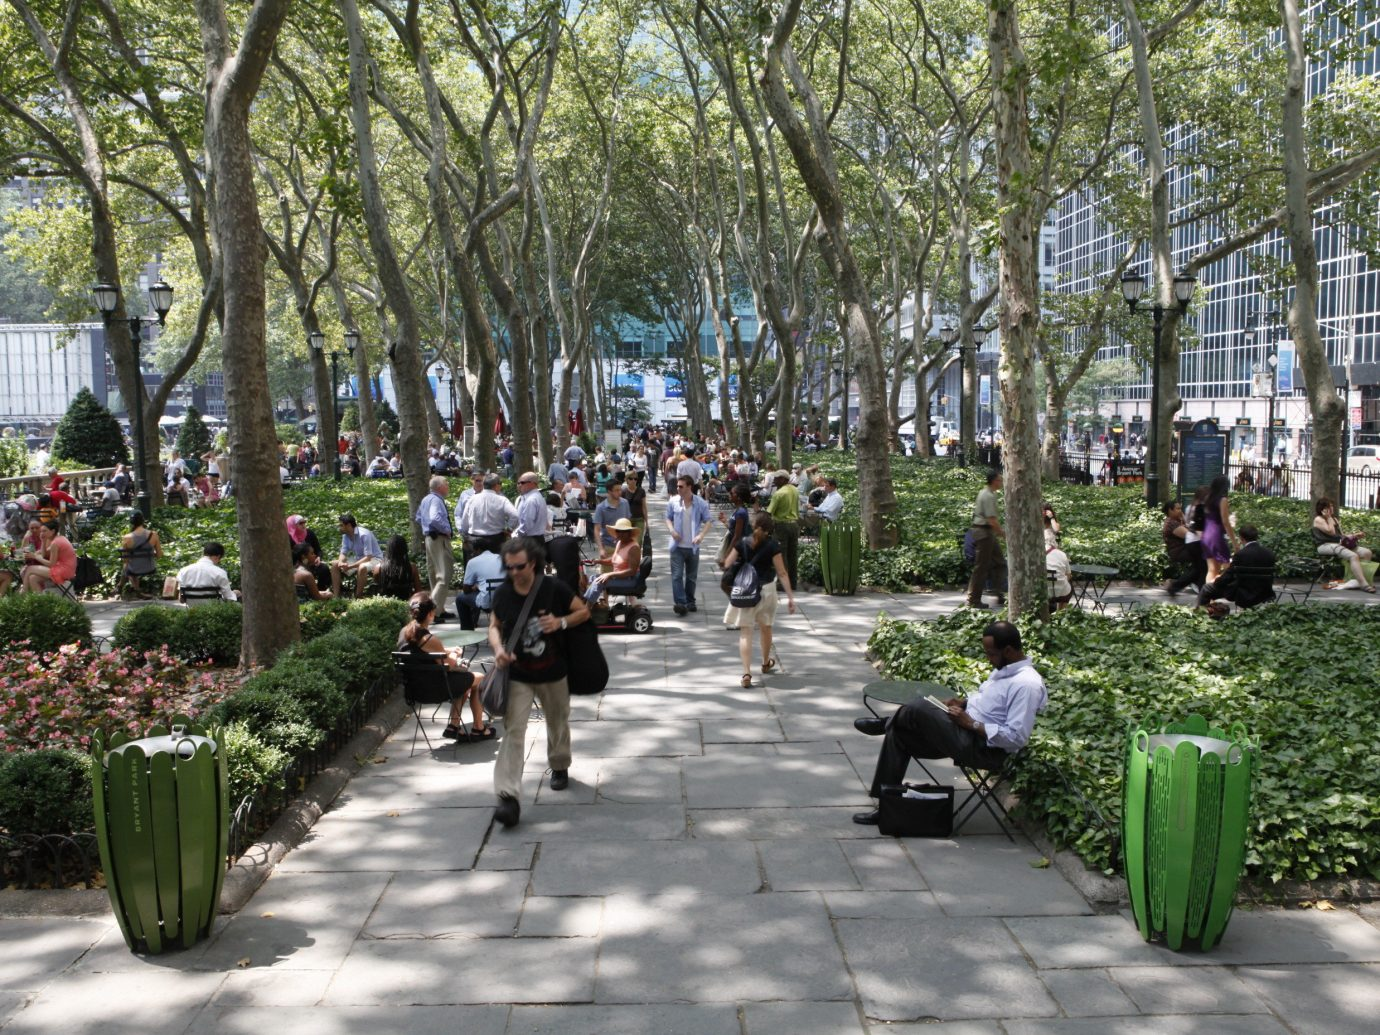 Budget tree outdoor neighbourhood City park public space plaza plant spring Garden town square pedestrian flower tours people campus day